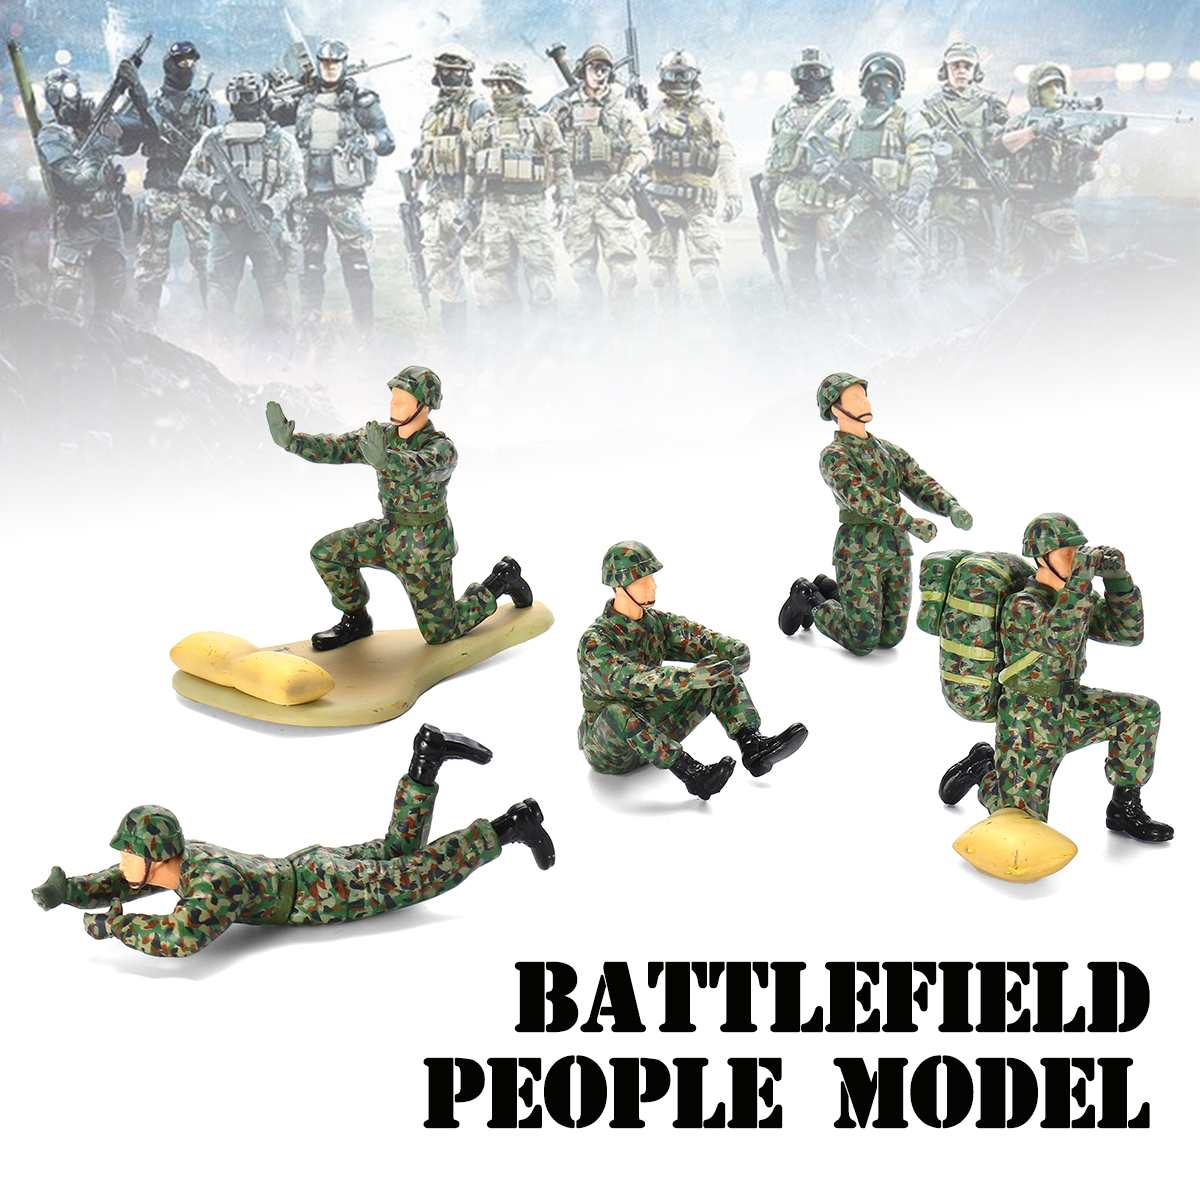 5PCS Camouflage Battlefield People model Army Soldiers Figure Kids Toy Child Gift Model Building Kits5PCS Camouflage Battlefield People model Army Soldiers Figure Kids Toy Child Gift Model Building Kits